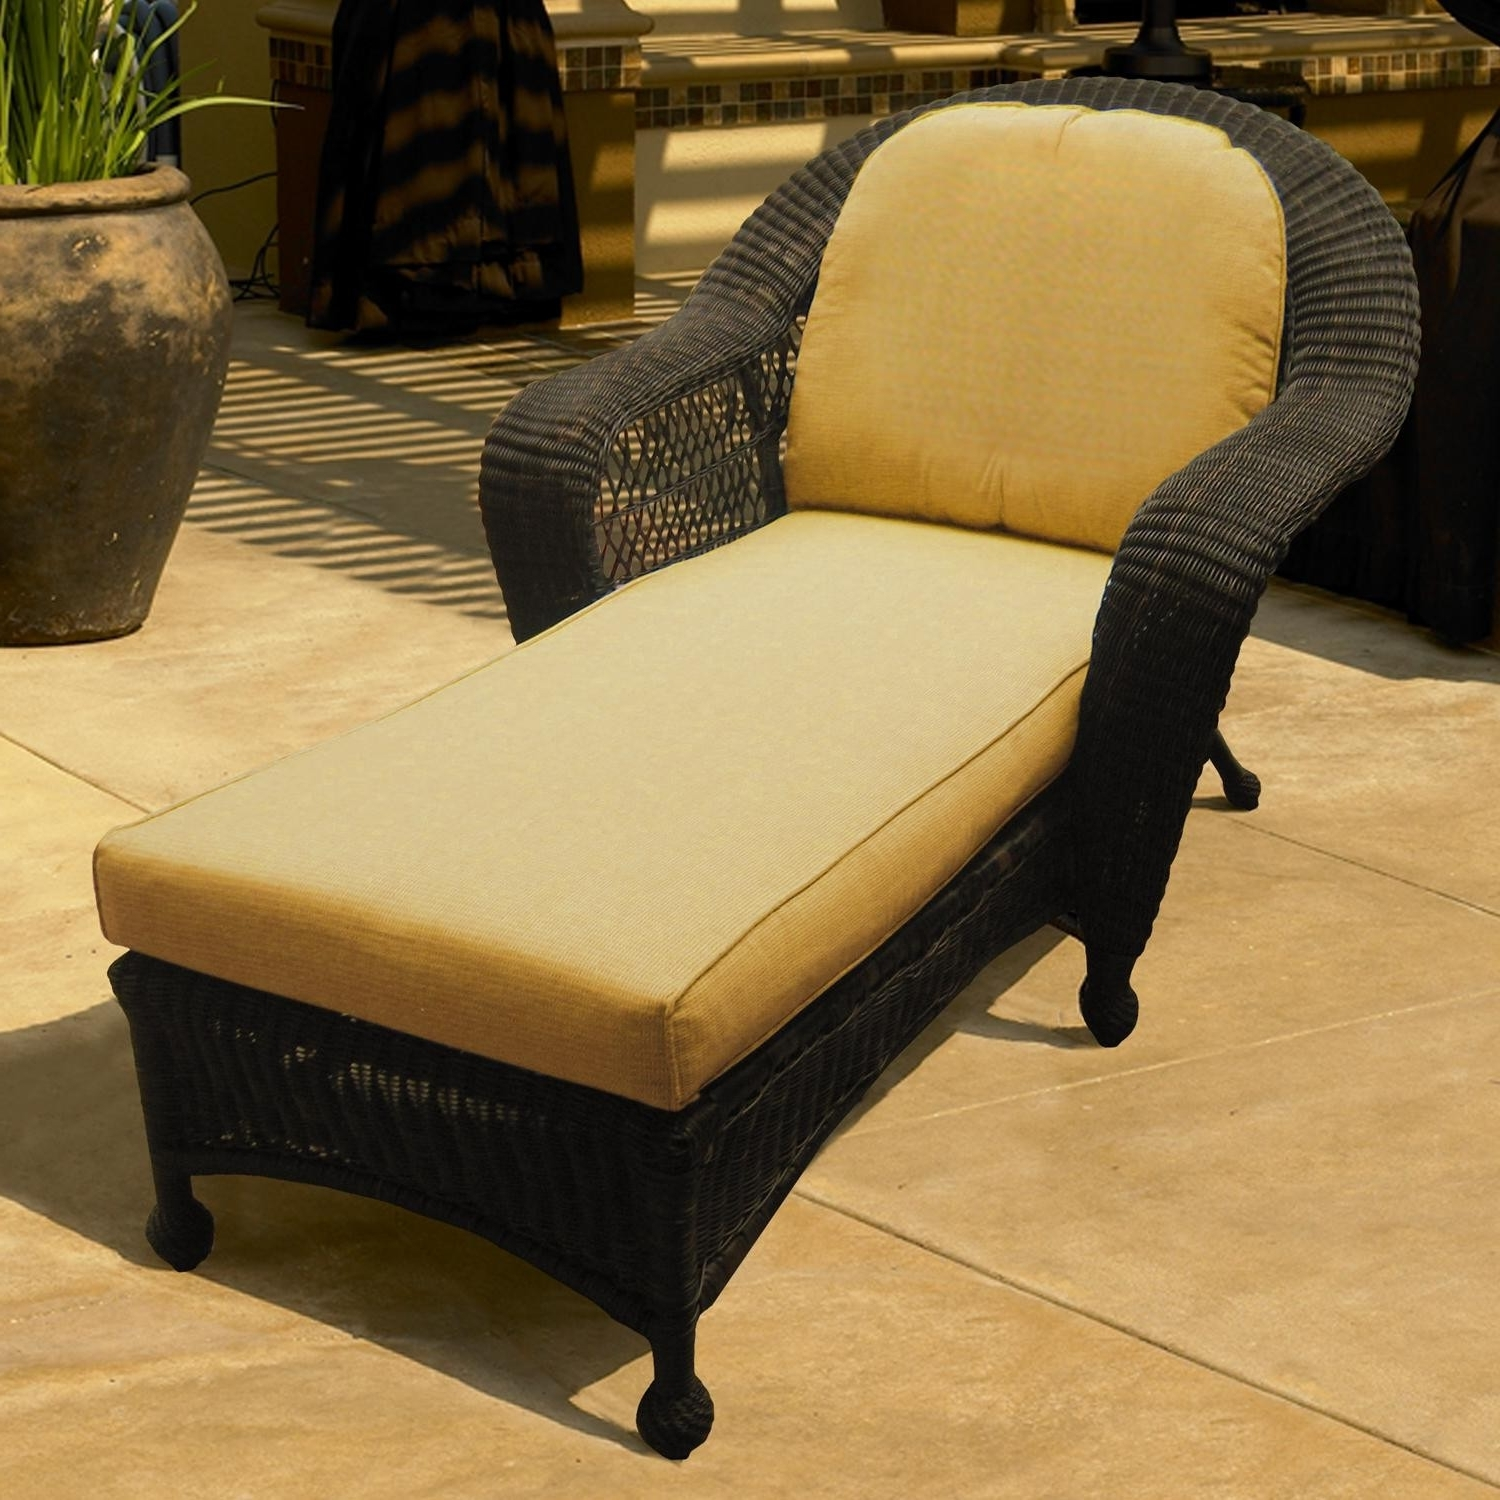 2018 Wicker Chaise Lounge Chairs For Outdoor Intended For Charleston Wicker Chaise Lounge (View 3 of 15)